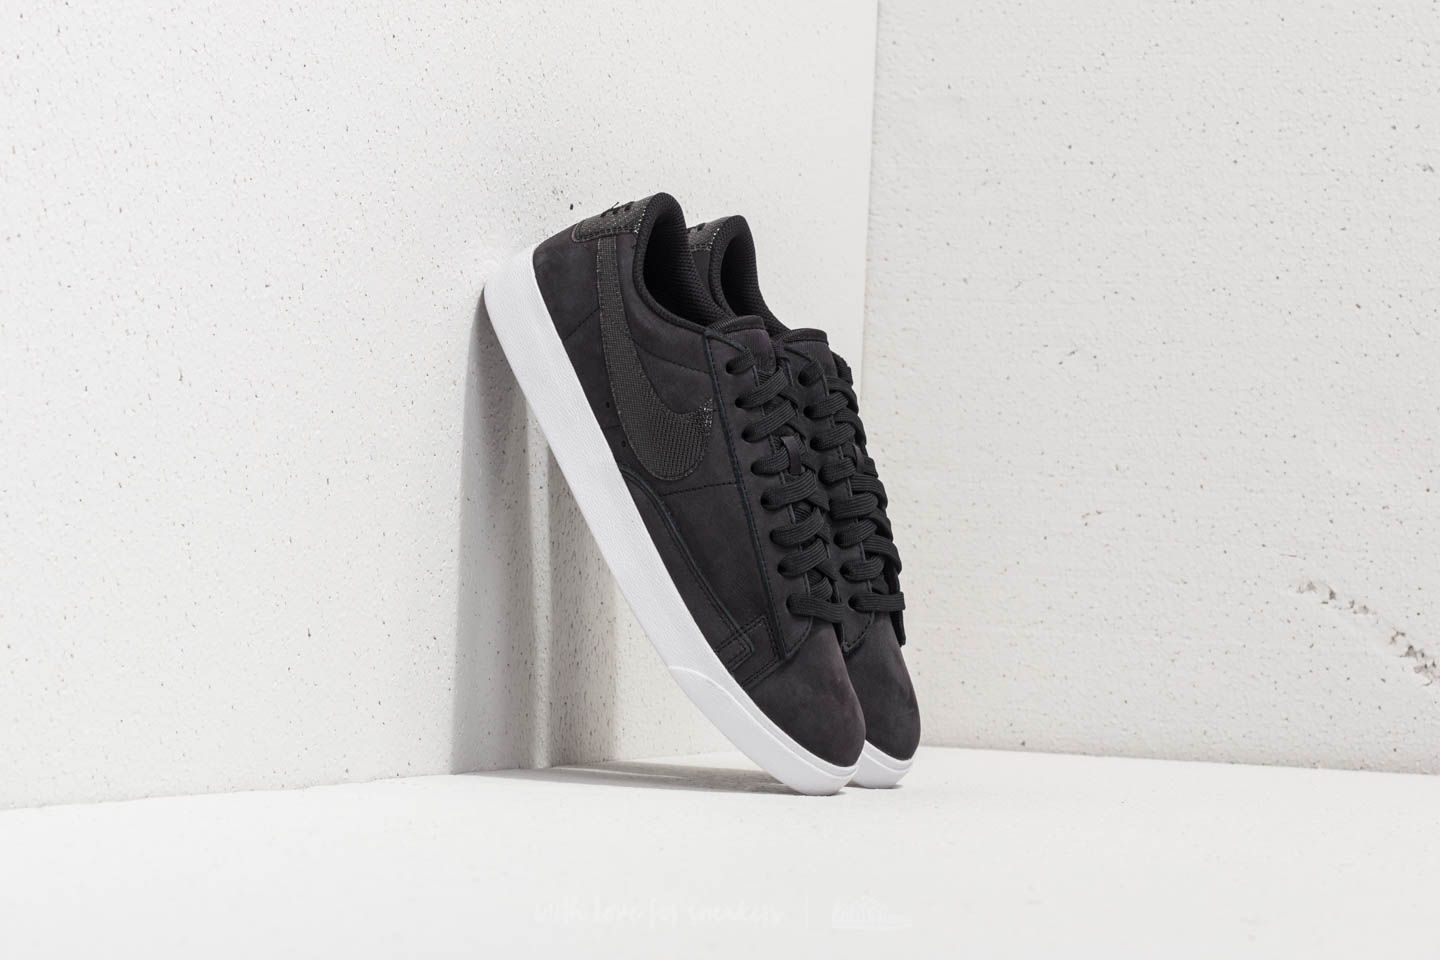 Nike Blazer Low LX W Black/ Black-White